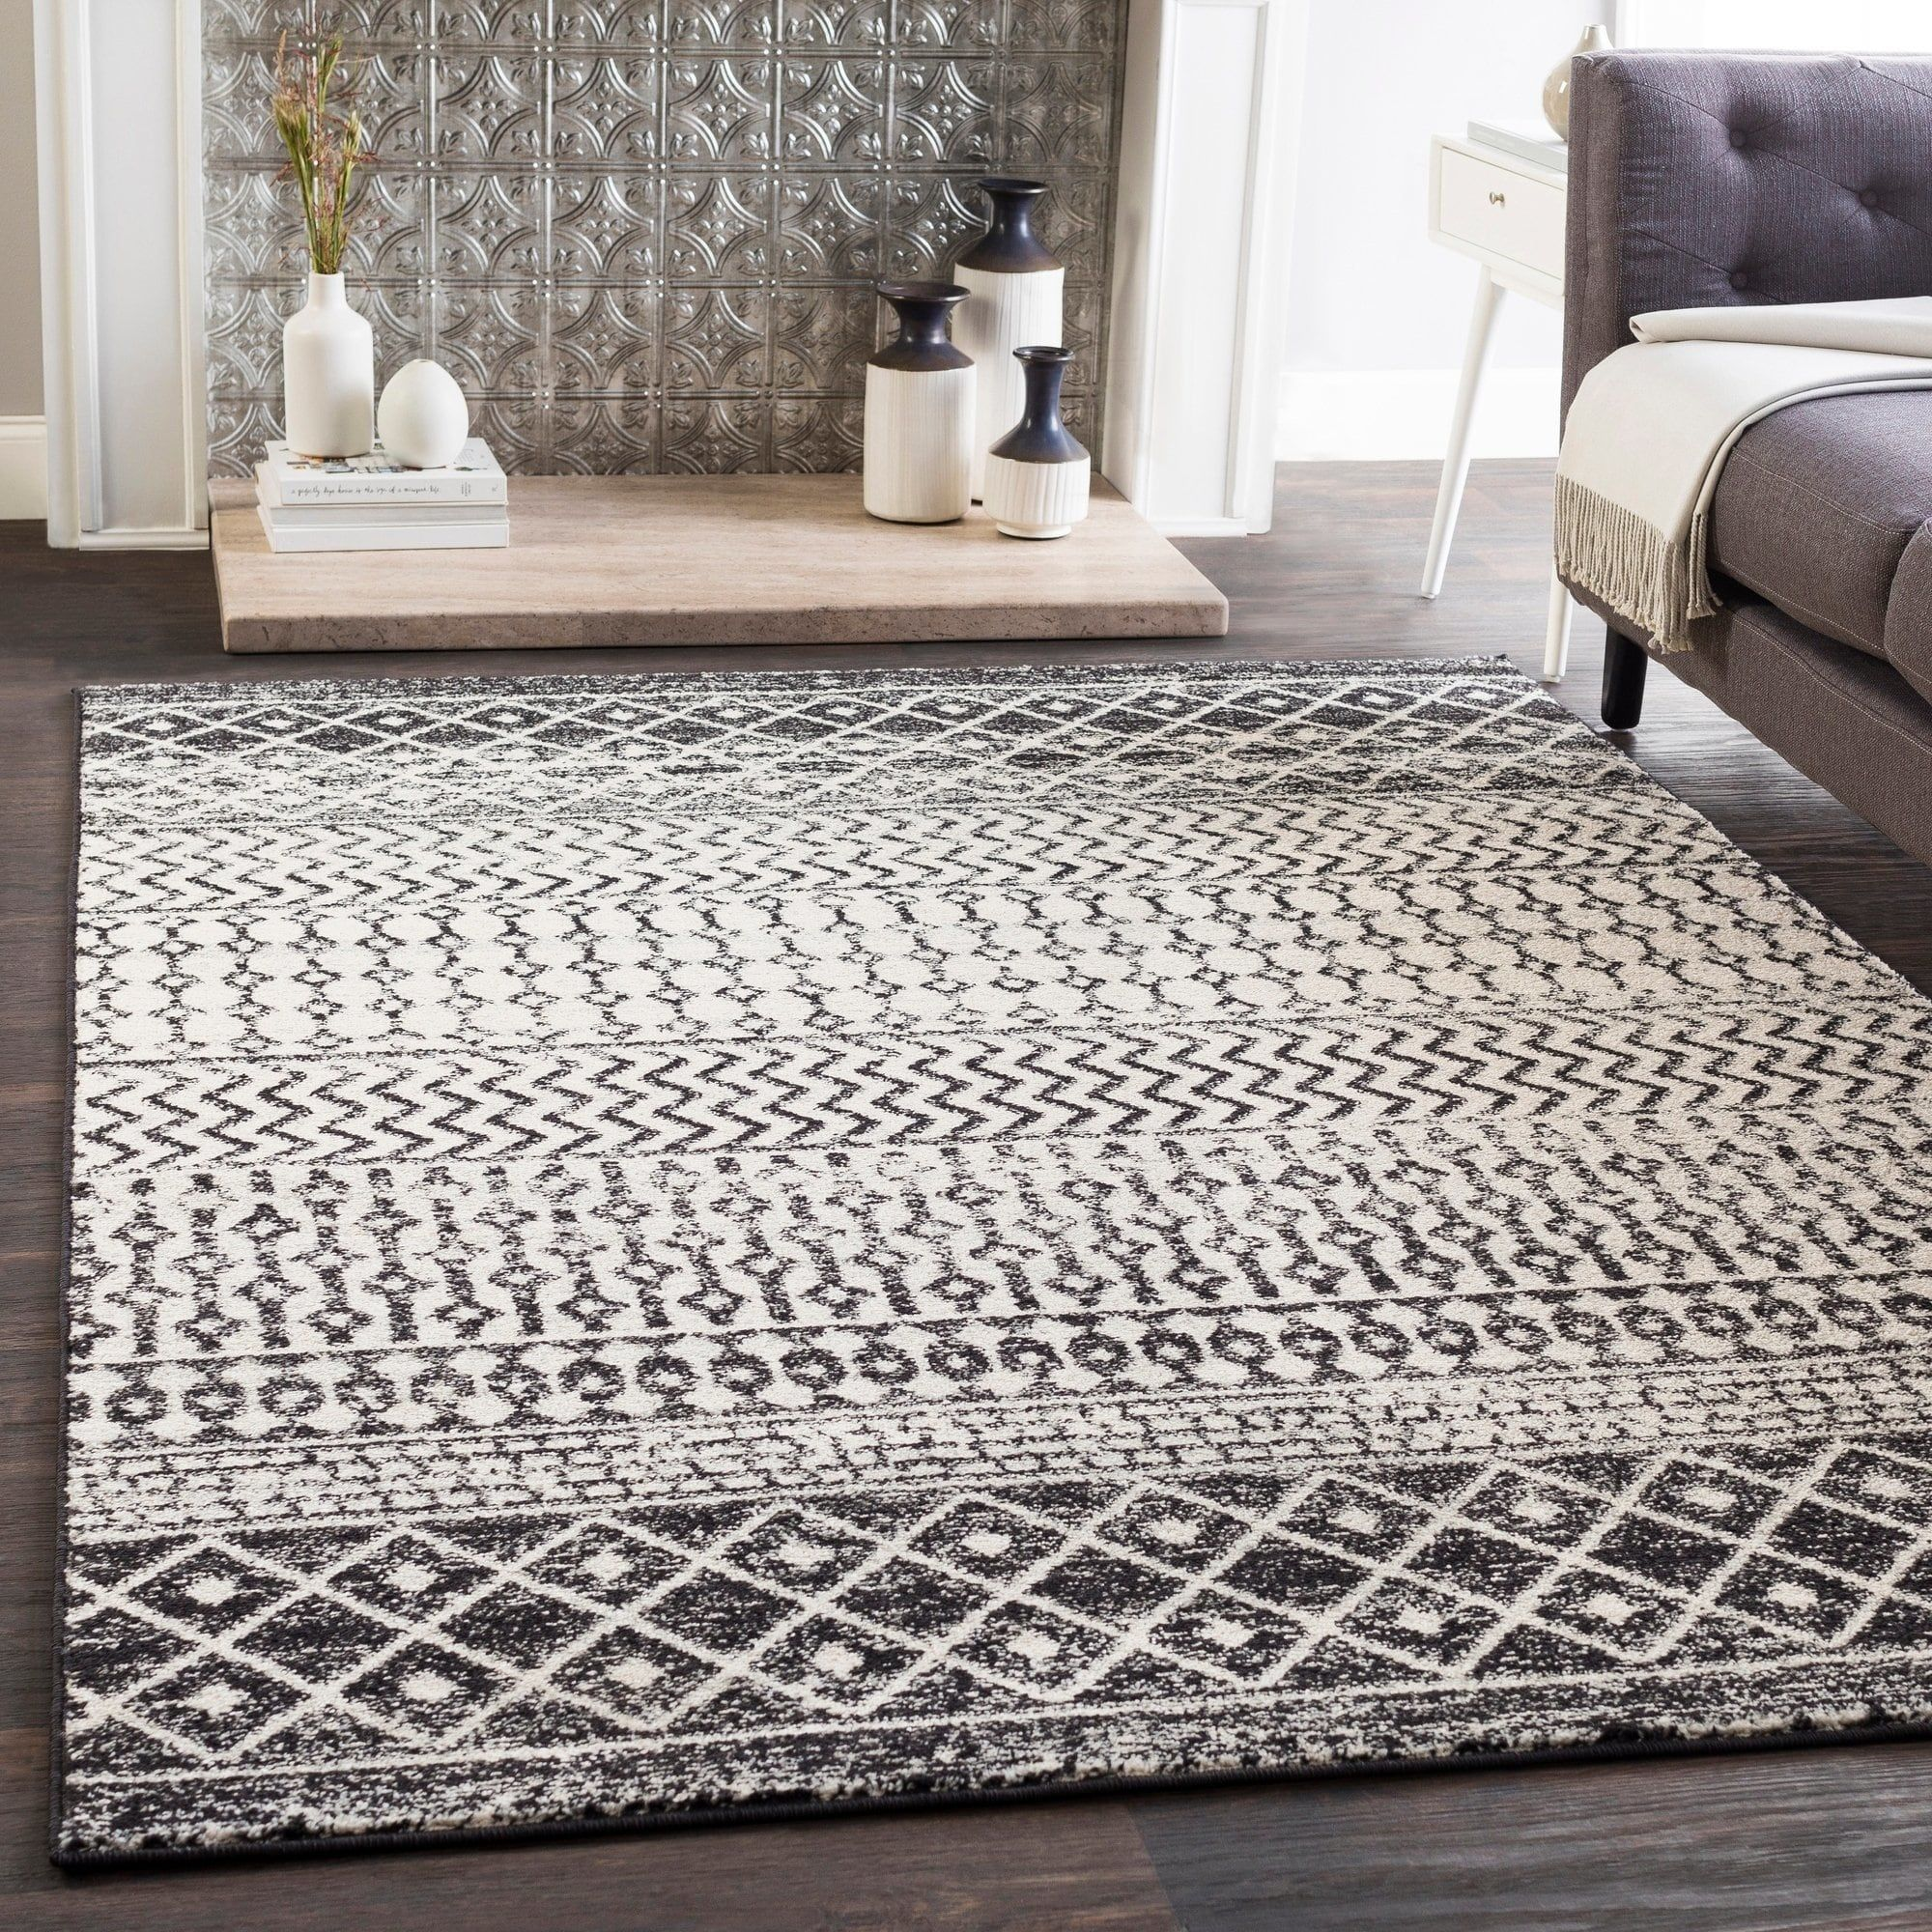 Edie Black And White Bohemian Area Rug 5 3 X 7 6 With Images